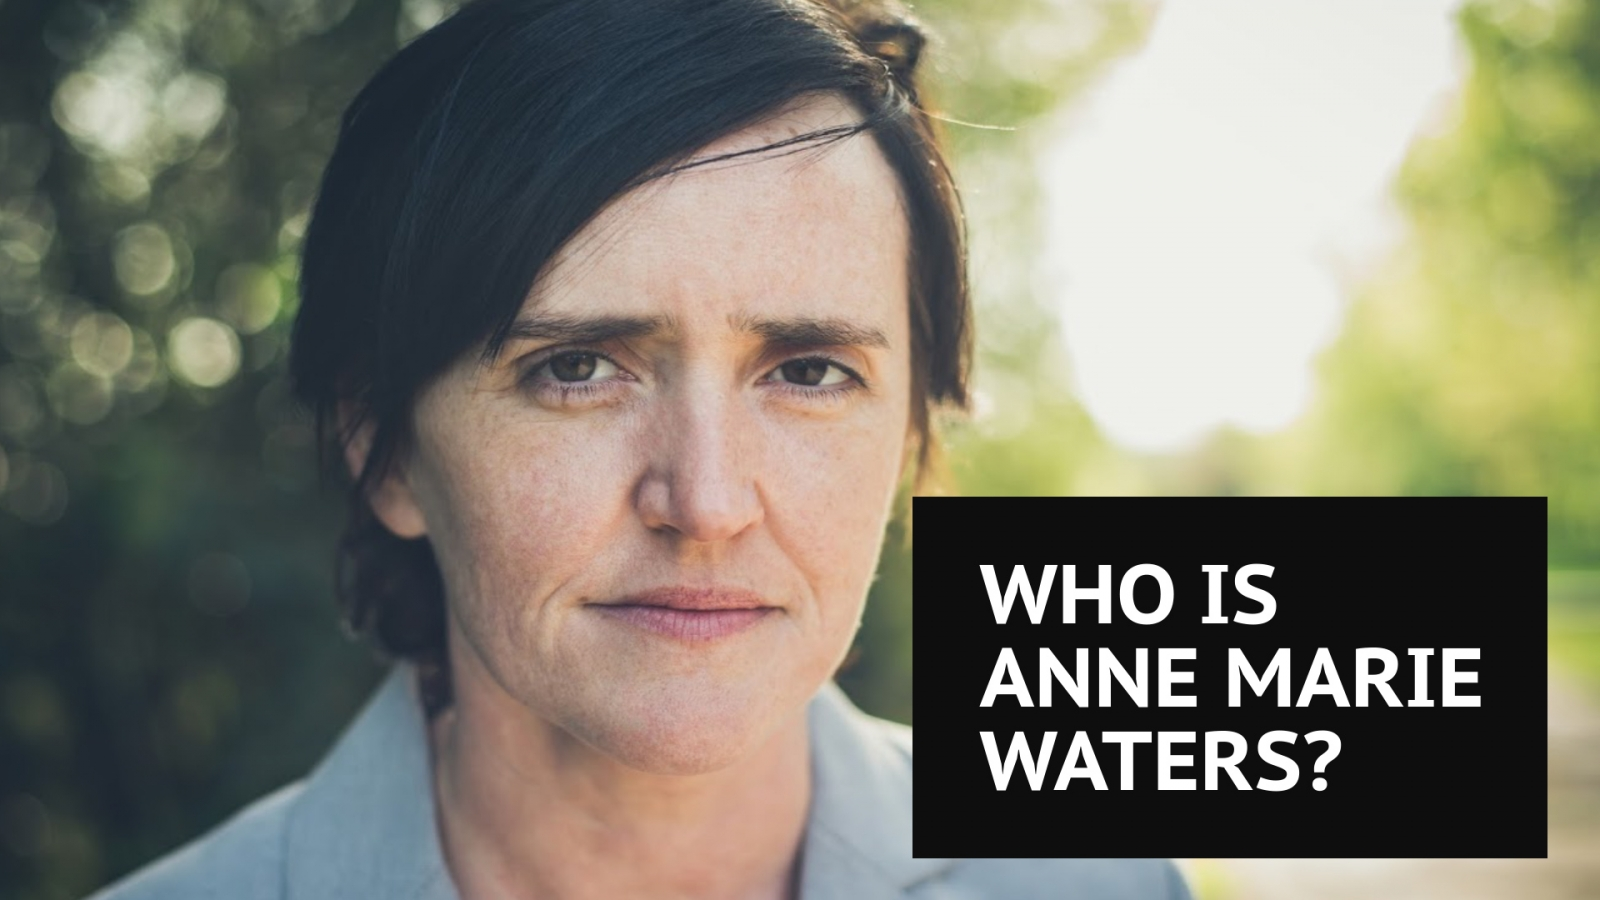 who-is-anne-marie-walters-the-anti-islam-campaigner-hoping-to-be-the-next-ukip-leader